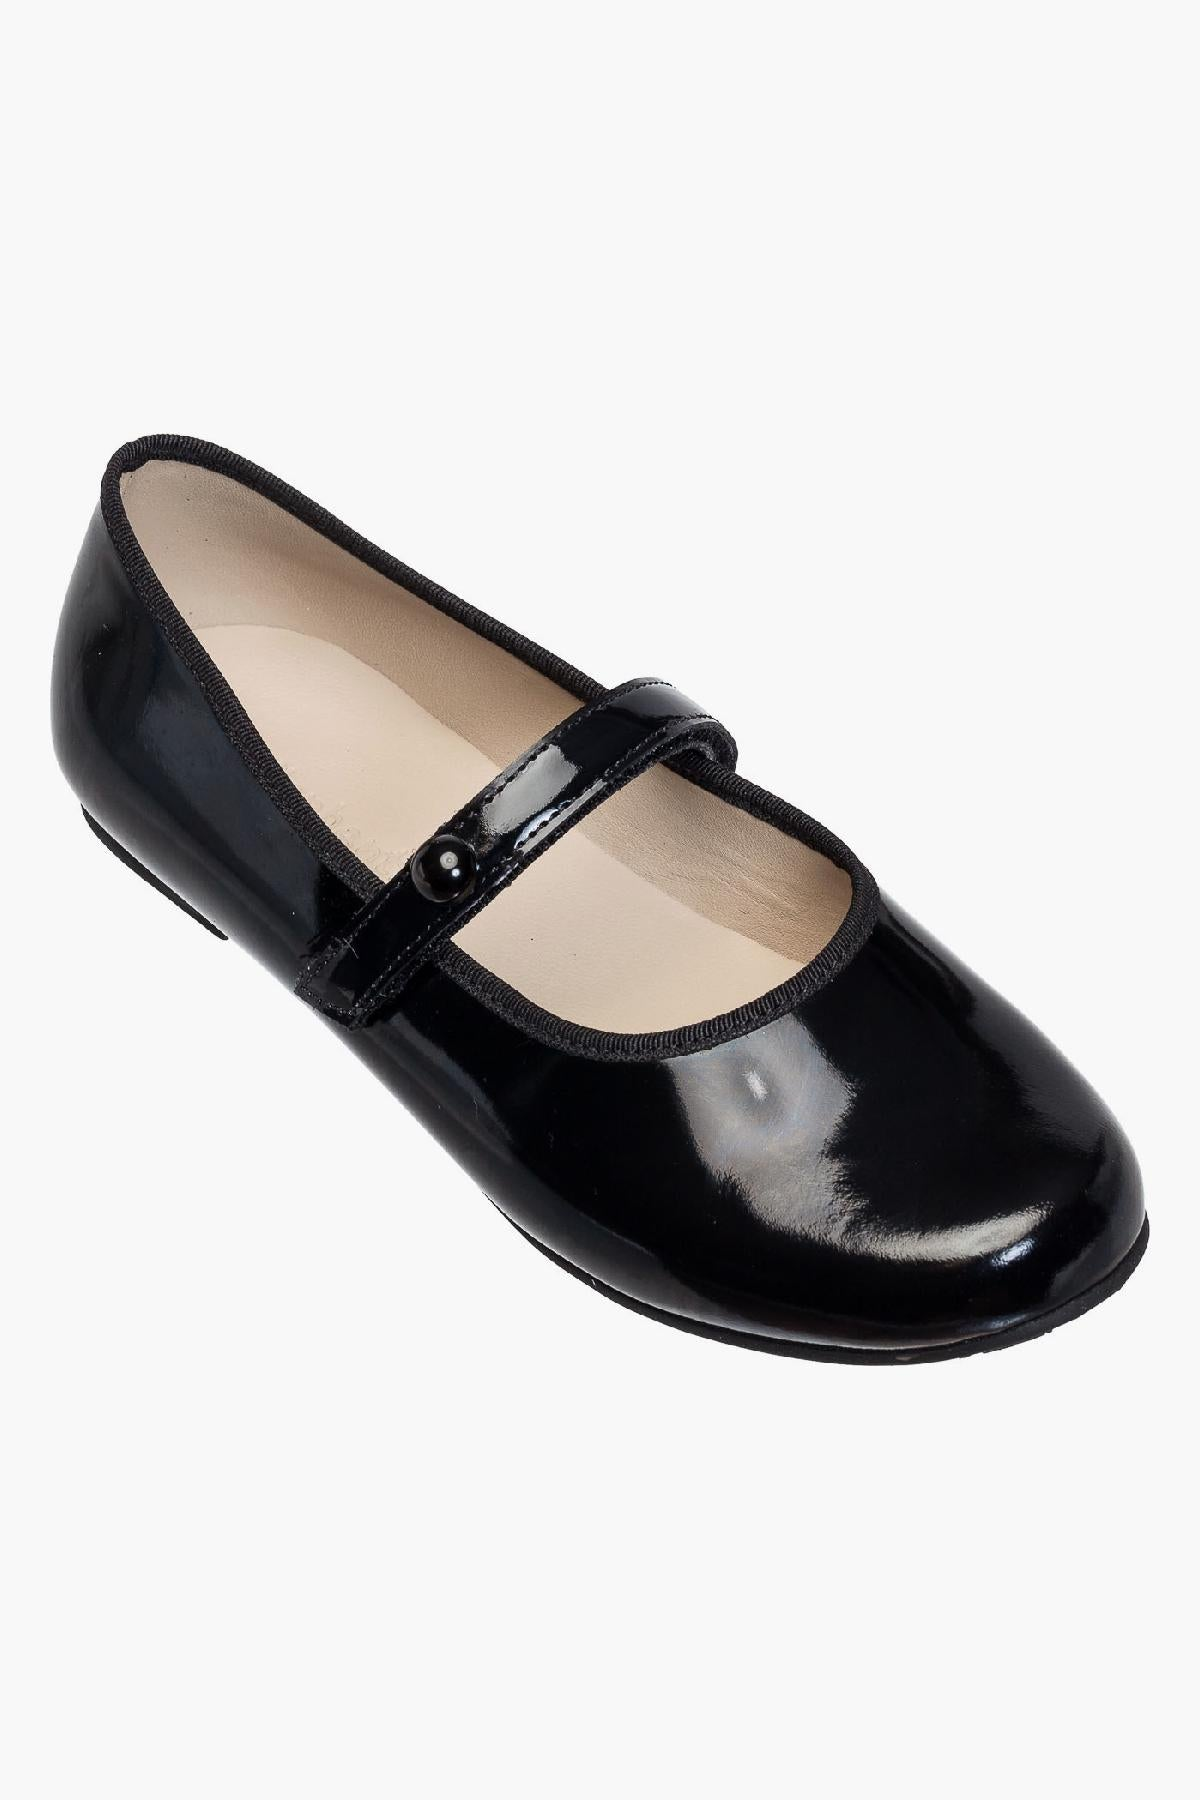 Elephantito Princess Mary Jane Flat - Black Patent